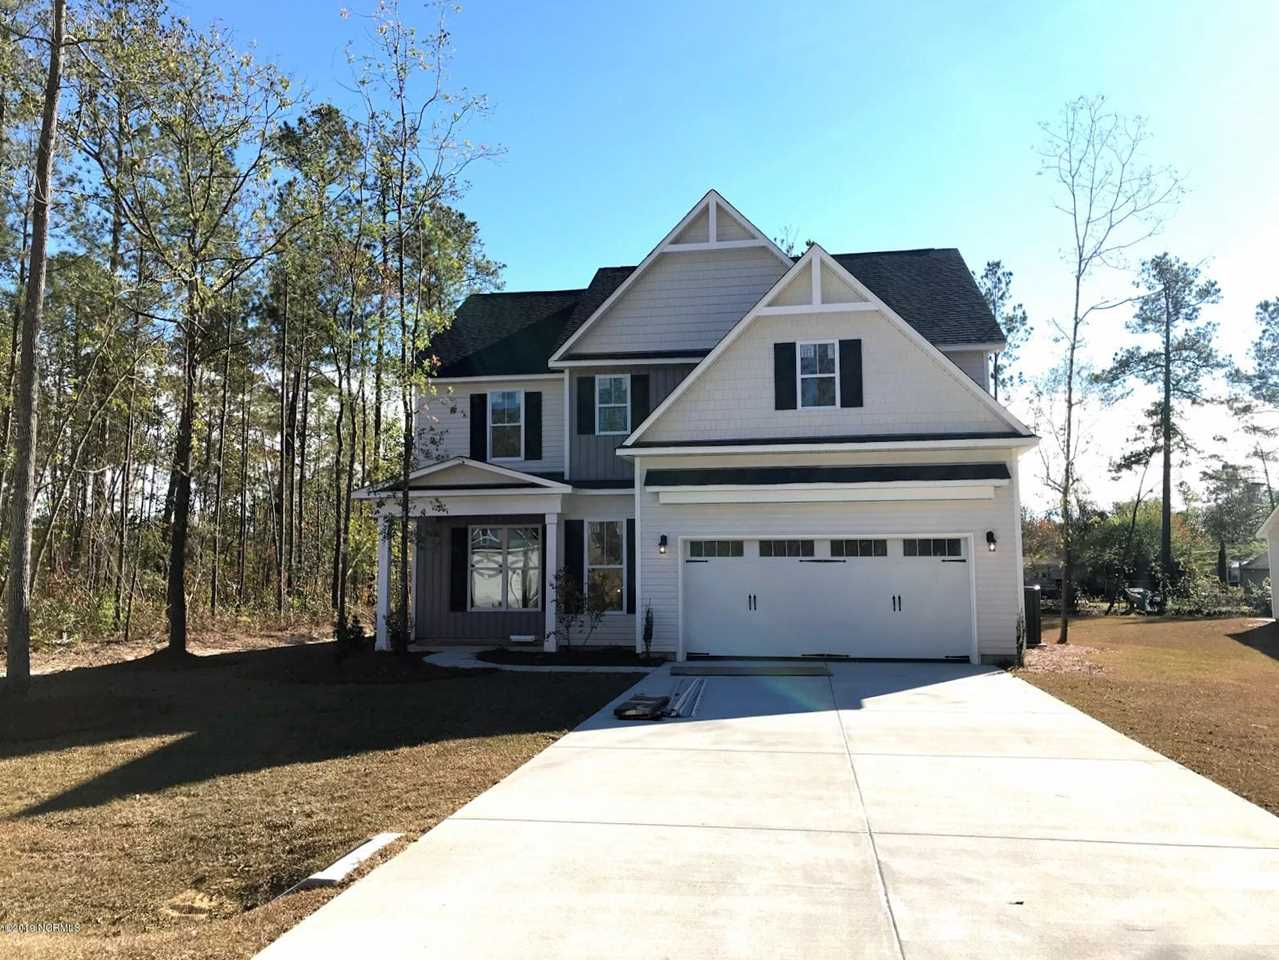 Home For Sale At 357 Bronze Drive, Rocky Point NC in The Knolls At Turkey Creek Photo 1